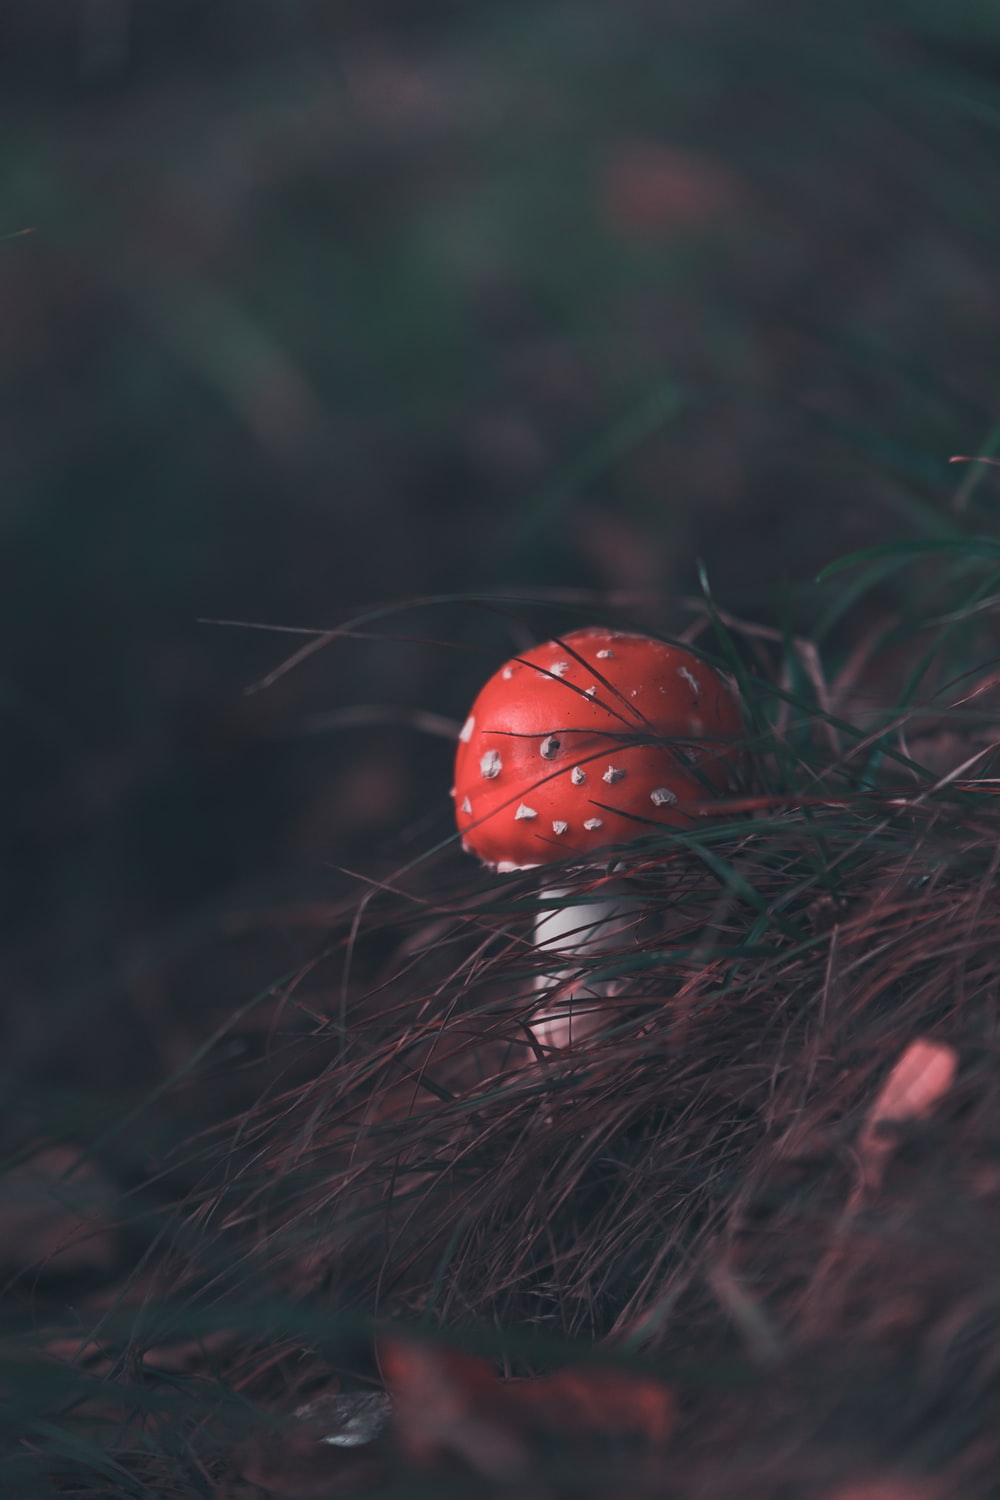 red and white mushroom photography